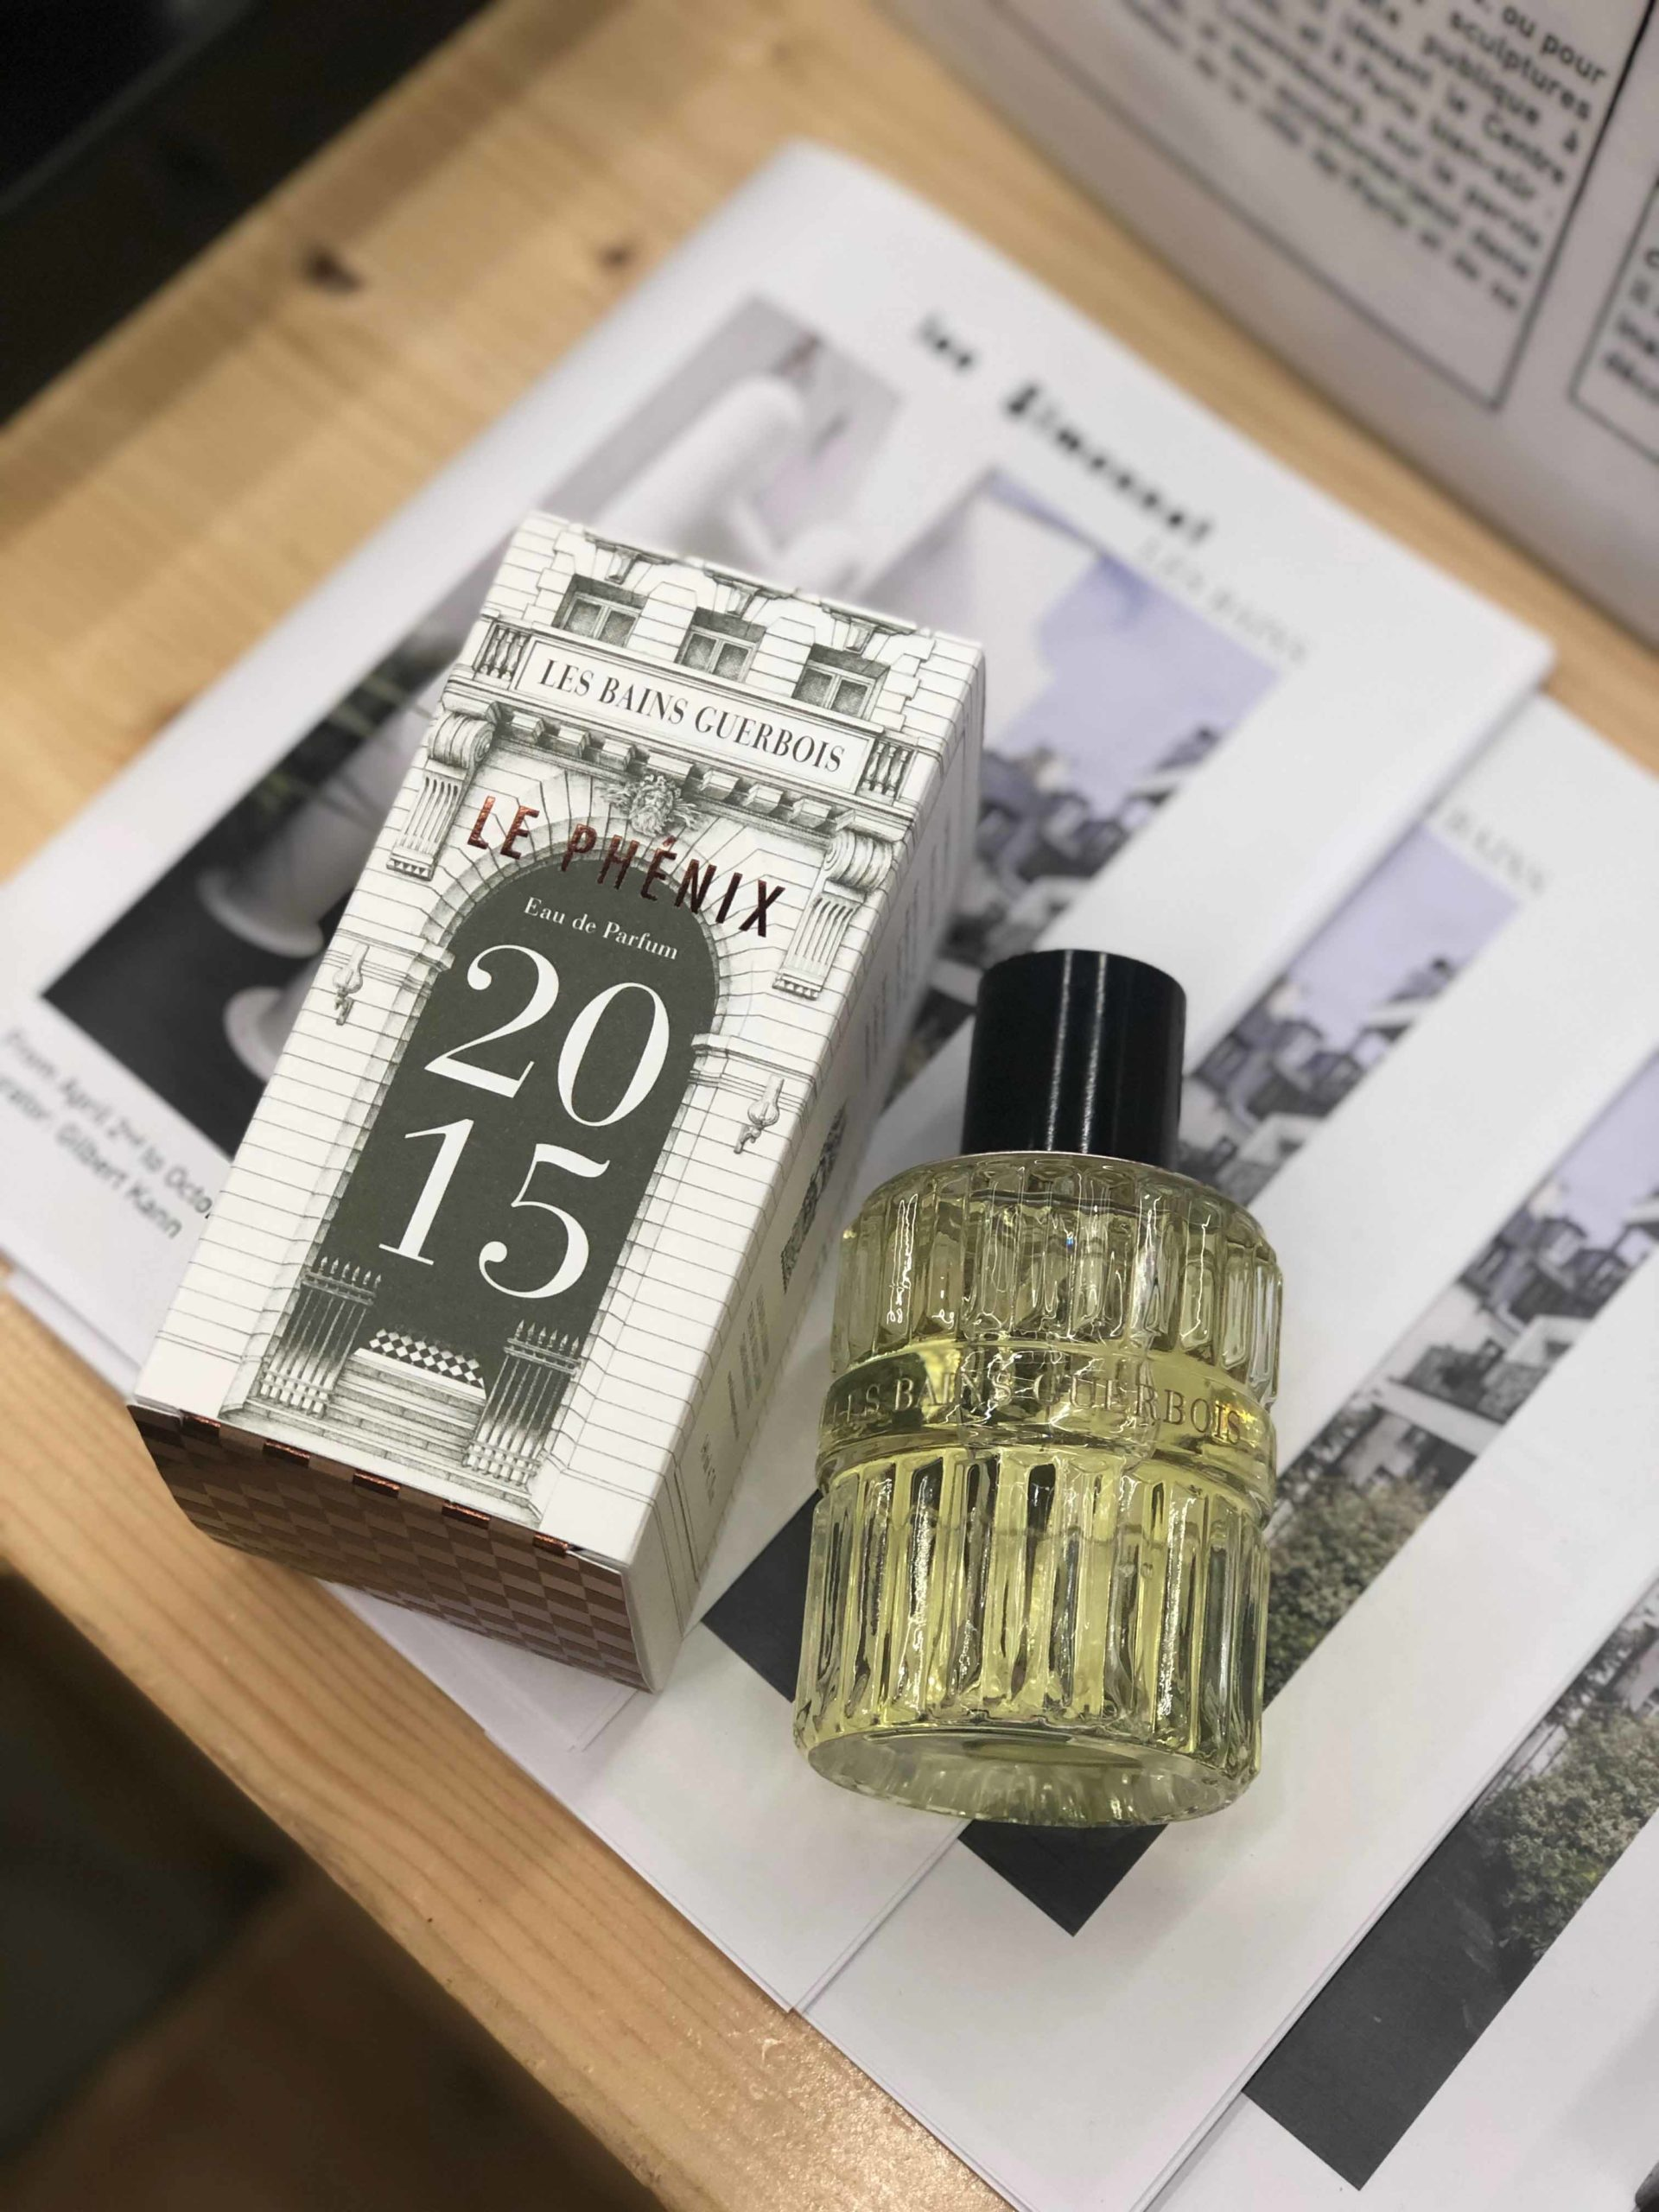 BAINS-GUERBOIS_Flacon_COSMETIQUE_Parfum_PLANET-DESIGN-PARIS-Eric-Berthes_02-scaled.jpg